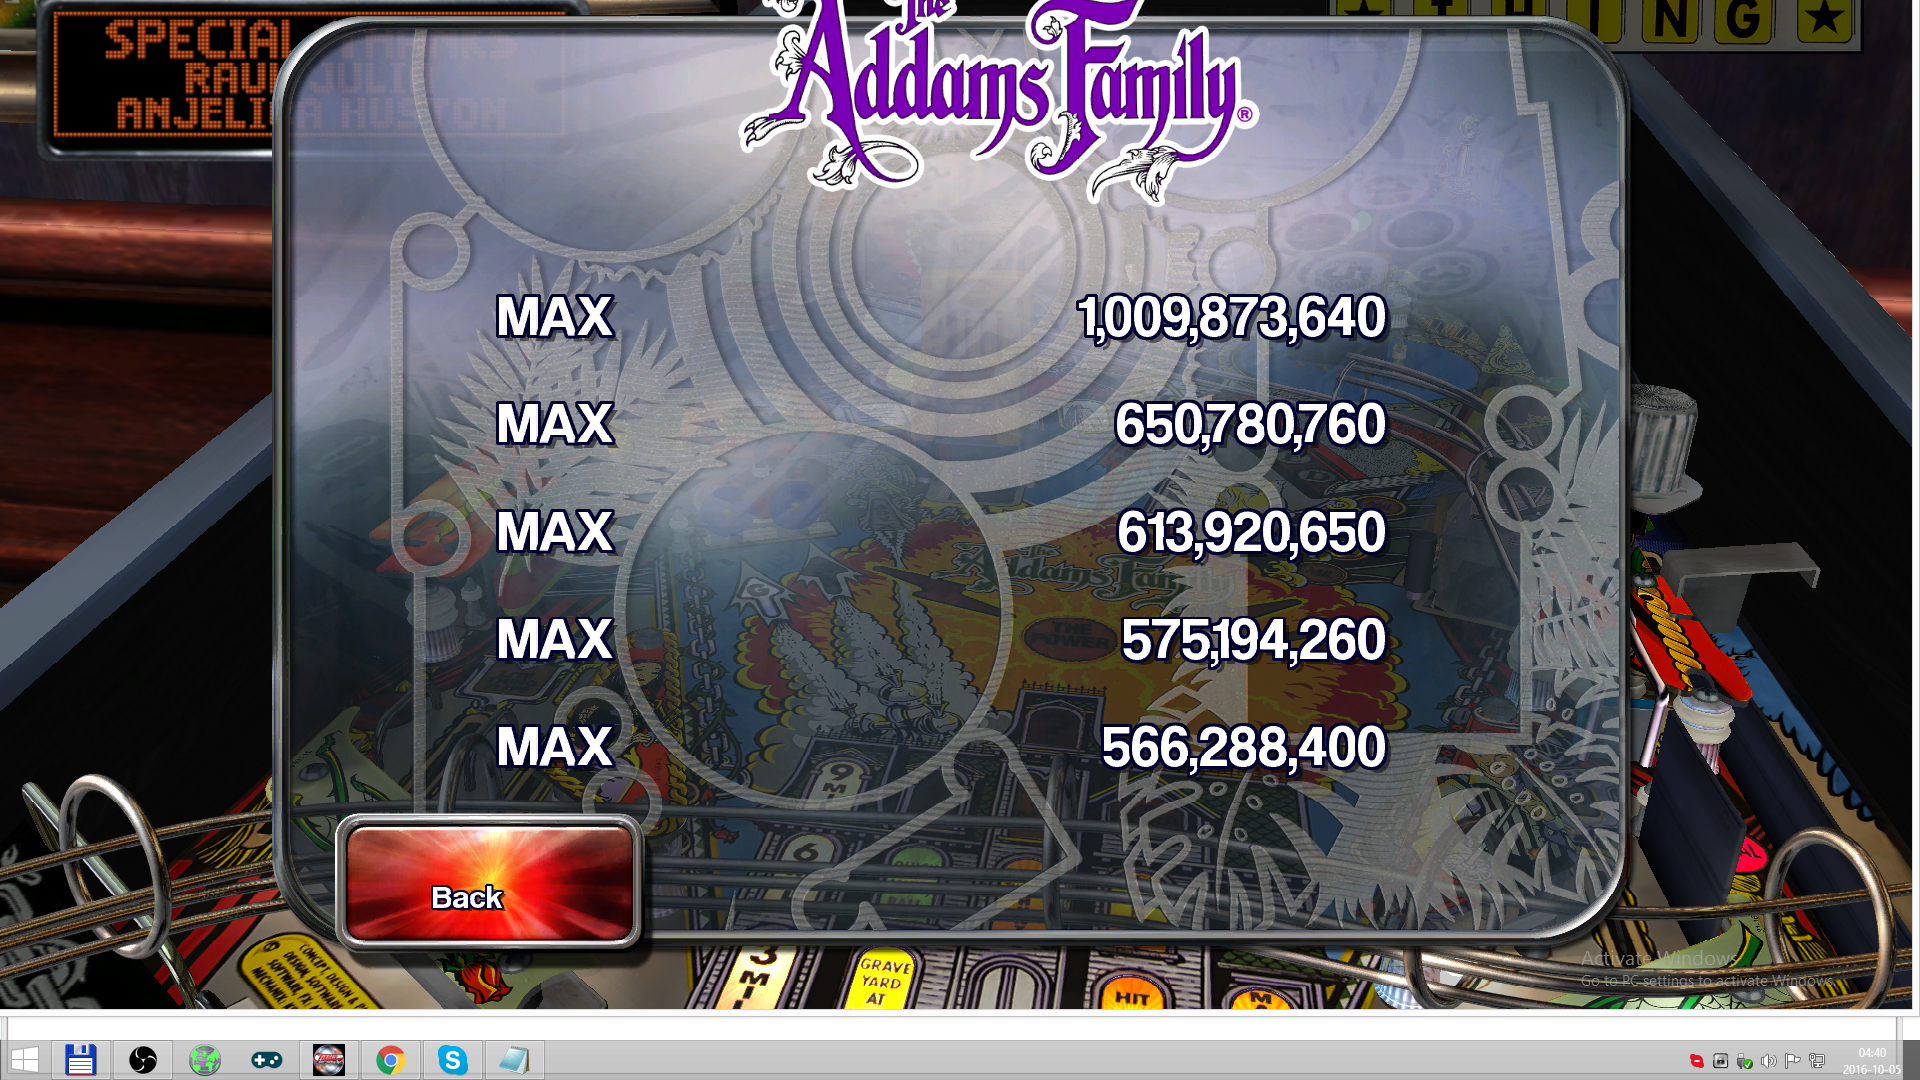 Pinball Arcade: The Addams Family 1,009,873,640 points